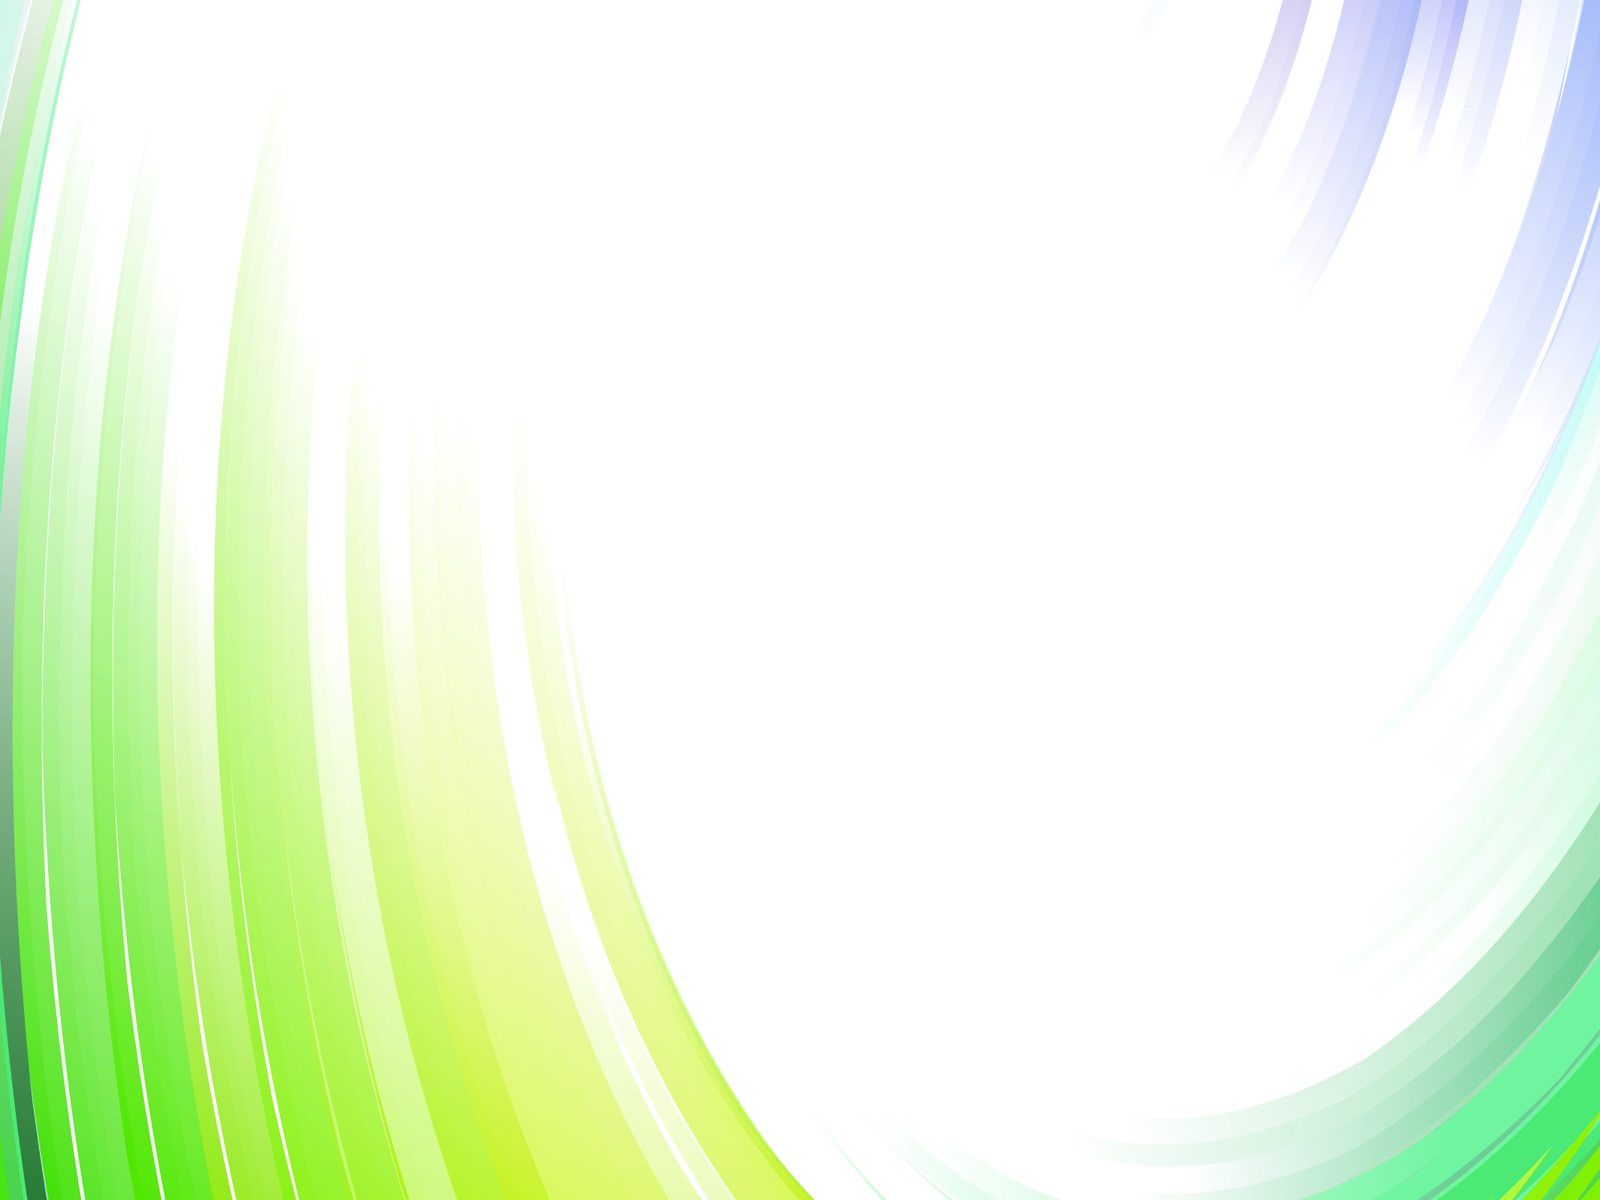 Corporation Green Waves Backgrounds